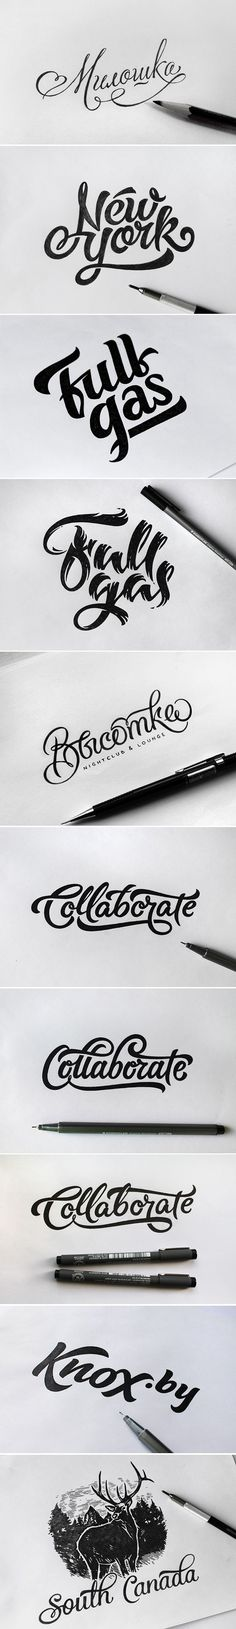 I like the variety and smooth edges that have been created. Sketch Vol. 2 on Behance